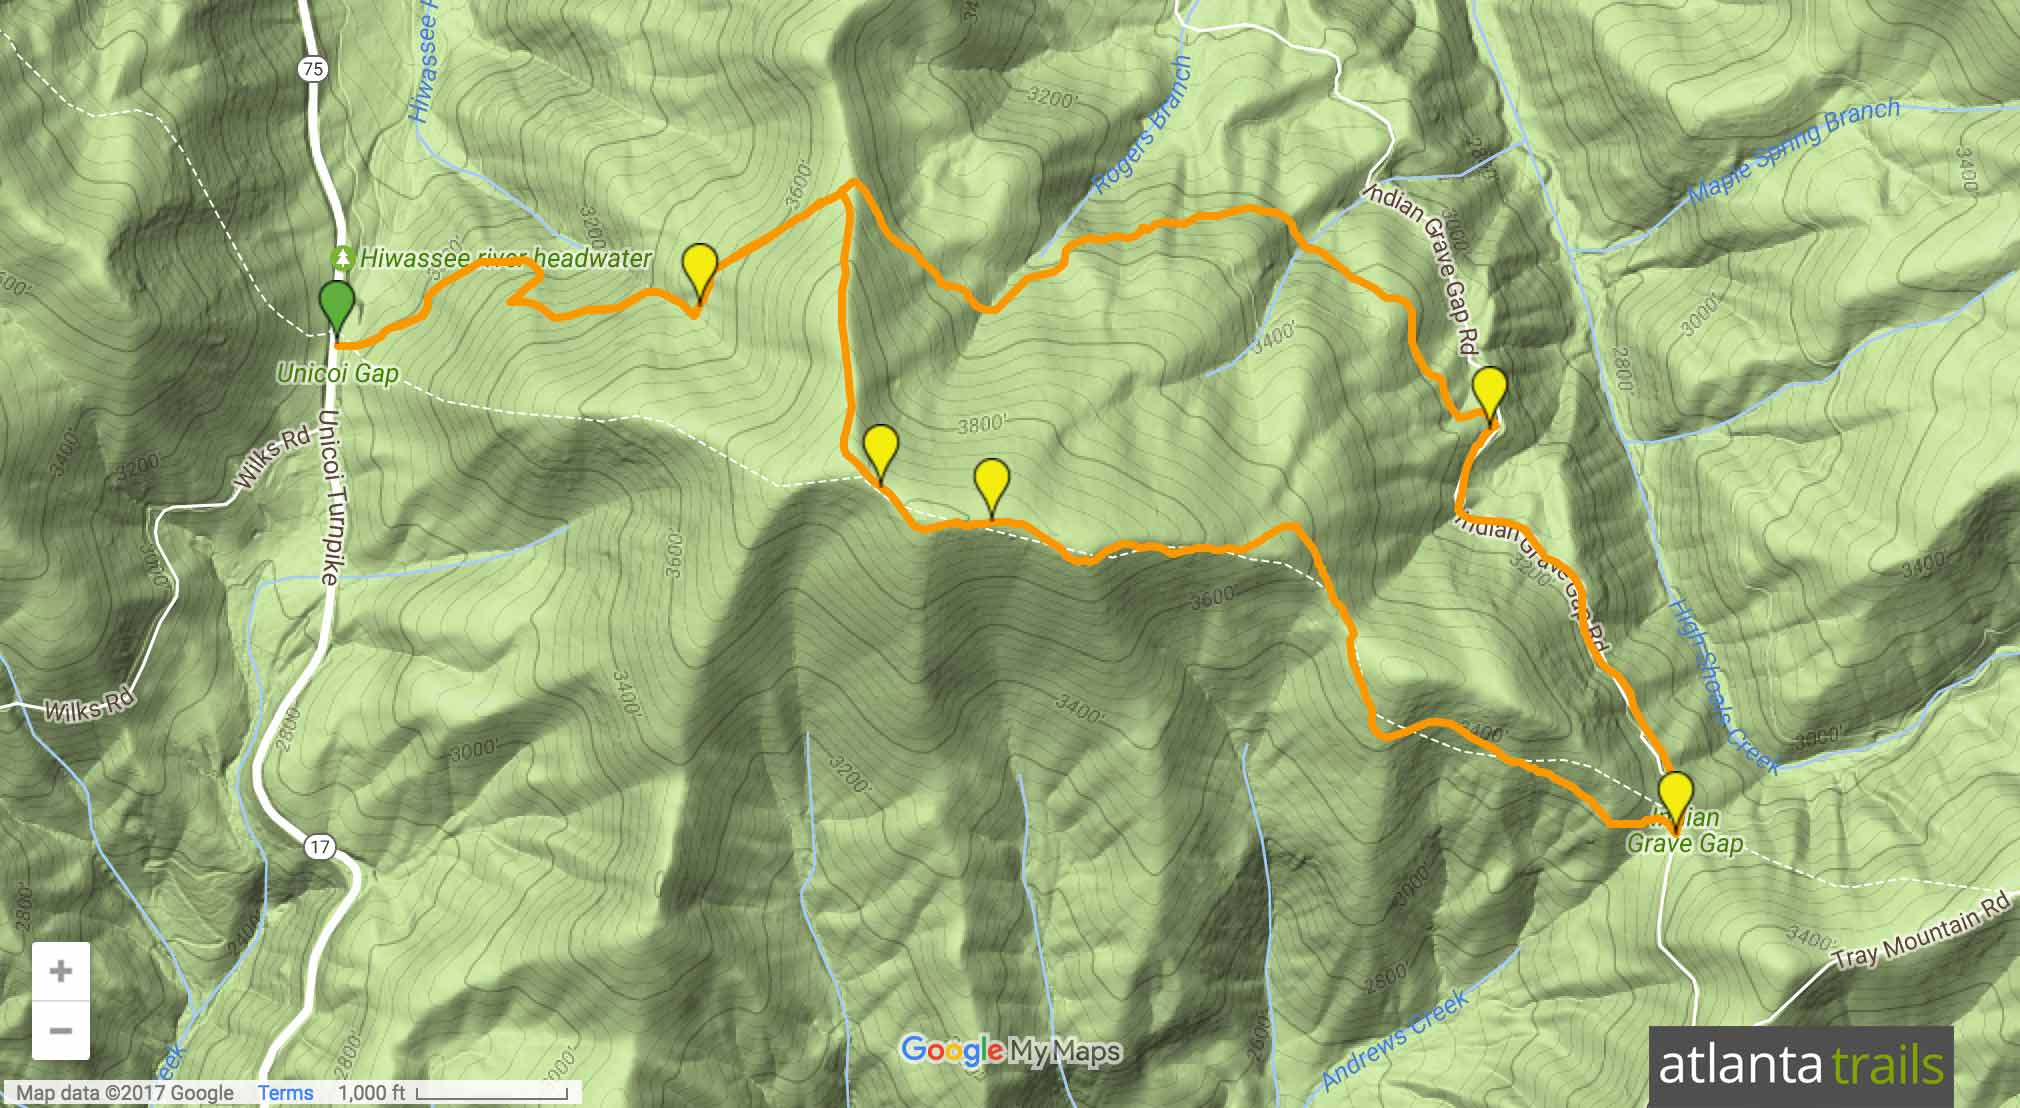 Appalachian Trail, Unicoi Gap to Indian Grave Gap Map